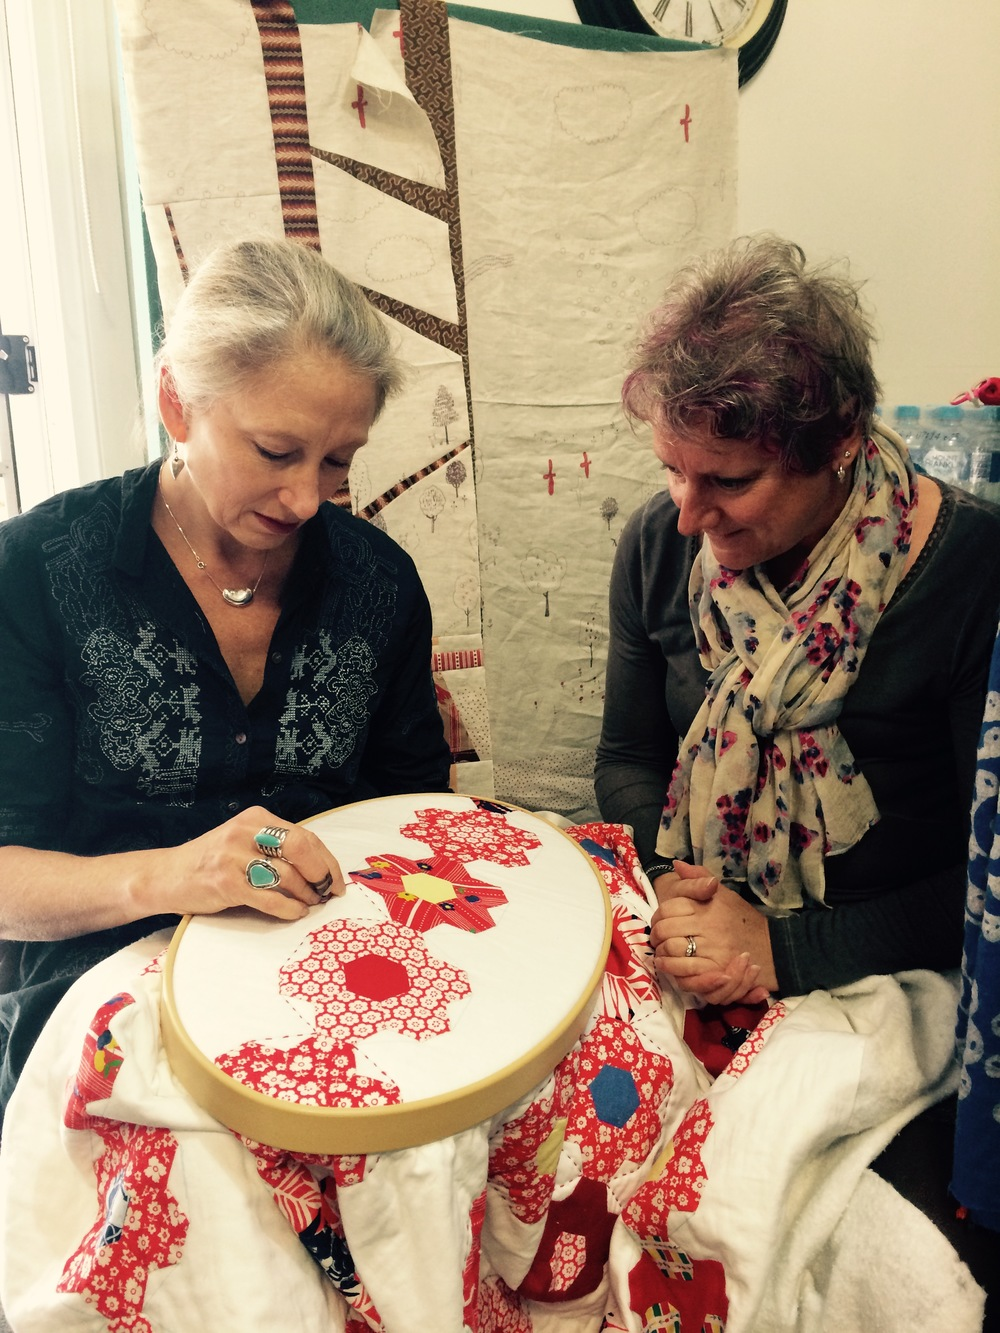 Kathy teaching Viv some hand quilting techniques